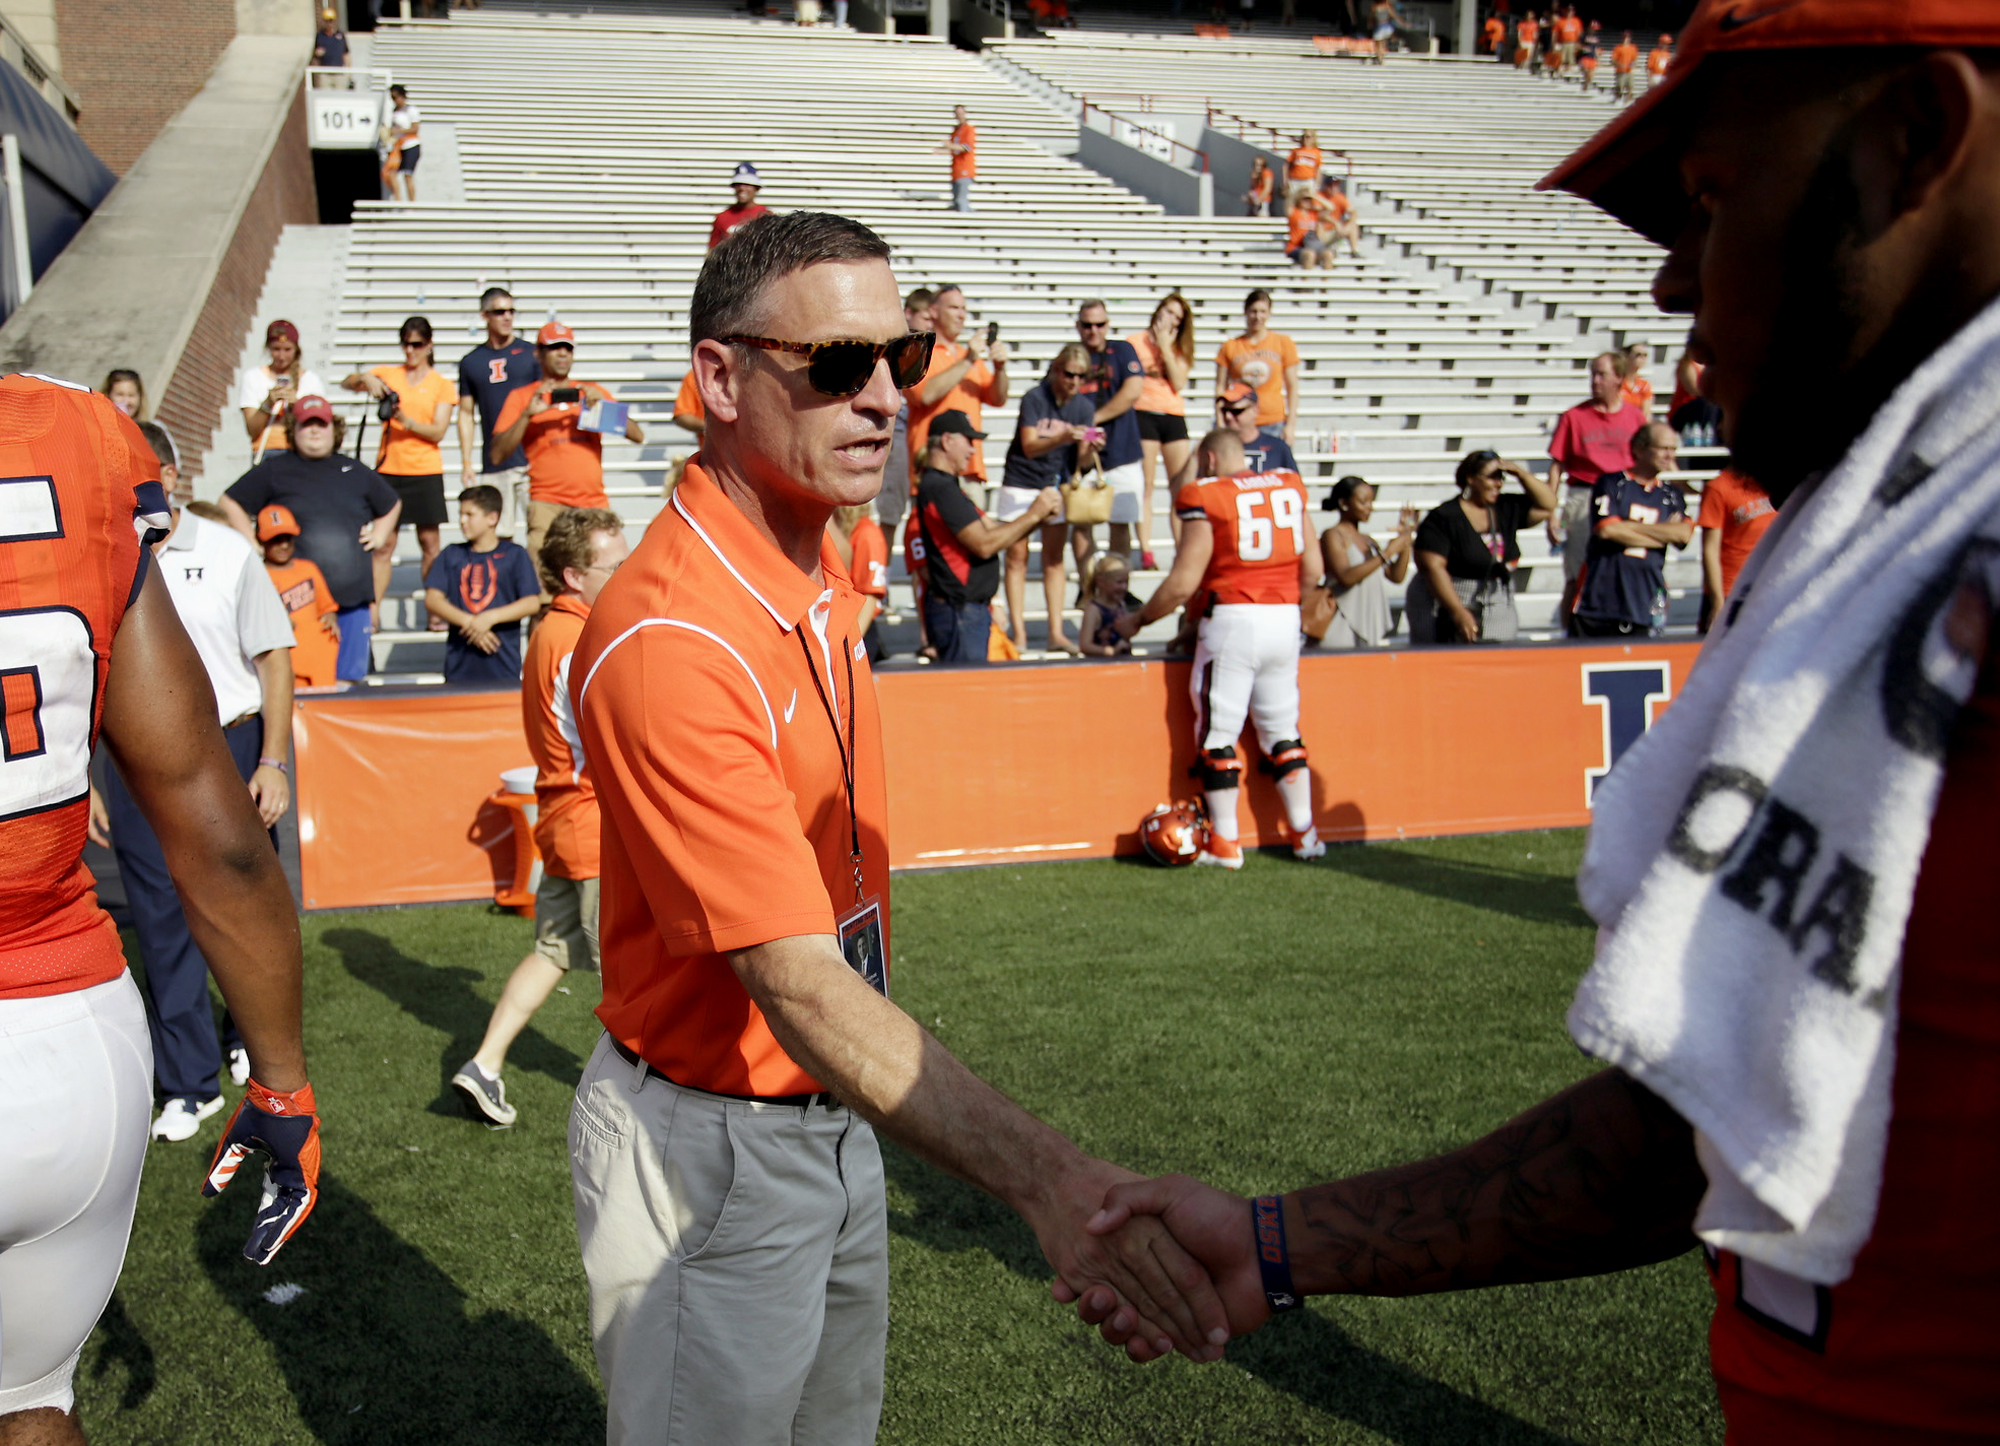 FILE - In this Sept. 5, 2015 file photo, Illinois athletic director Mike Thomas congratulates players after an NCAA college football game against in Champaign, Ill. In a motion filed Tuesday, Oct. 20, 2015, the university argues that a judge should dismis